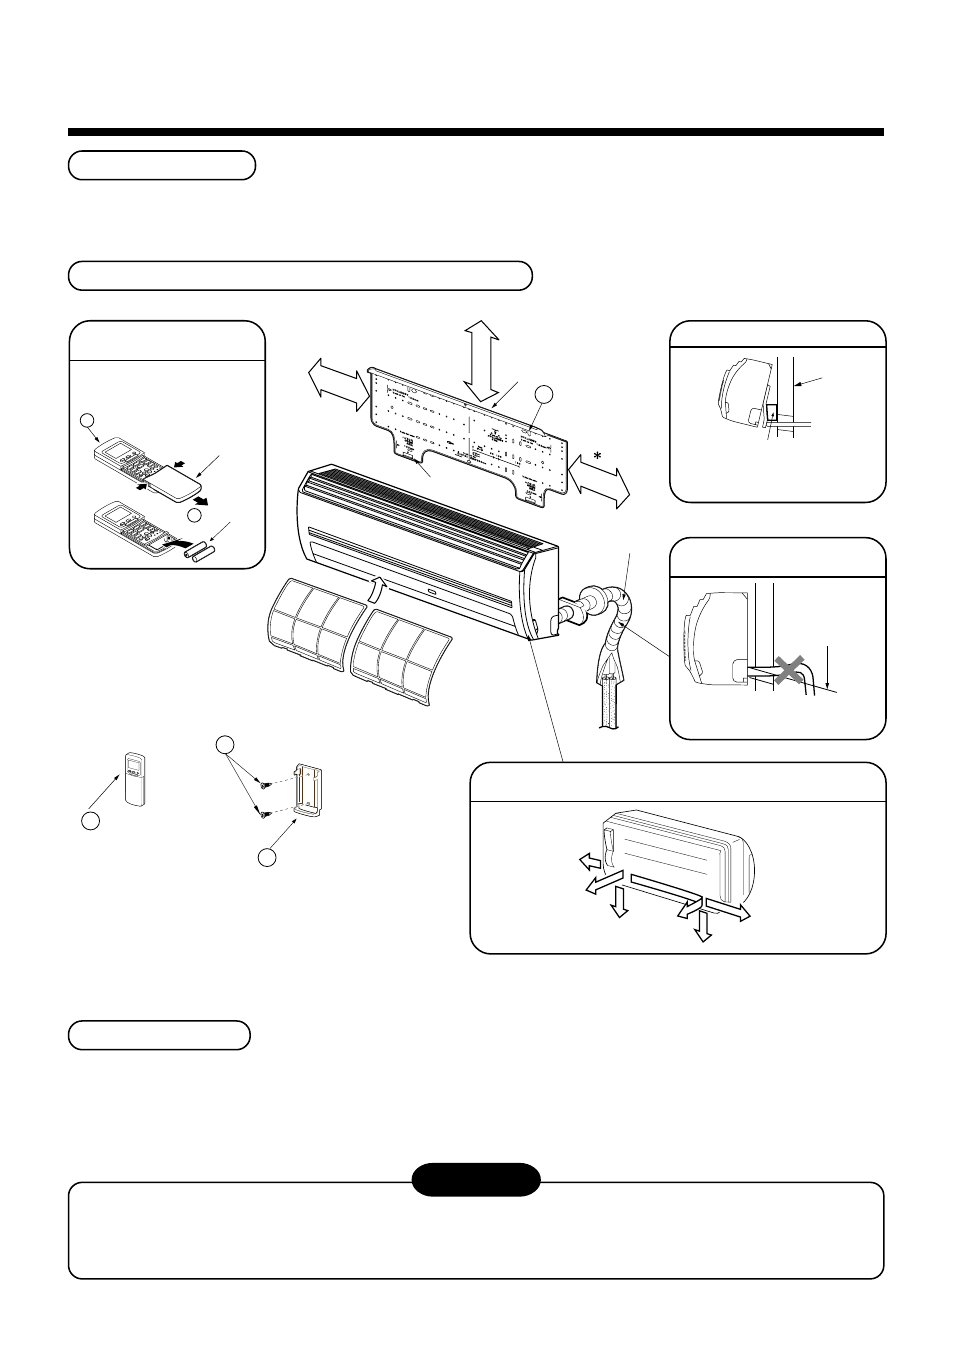 medium resolution of caution installation space installation diagram of indoor and outdoor units toshiba mmk ap0092h user manual page 7 29